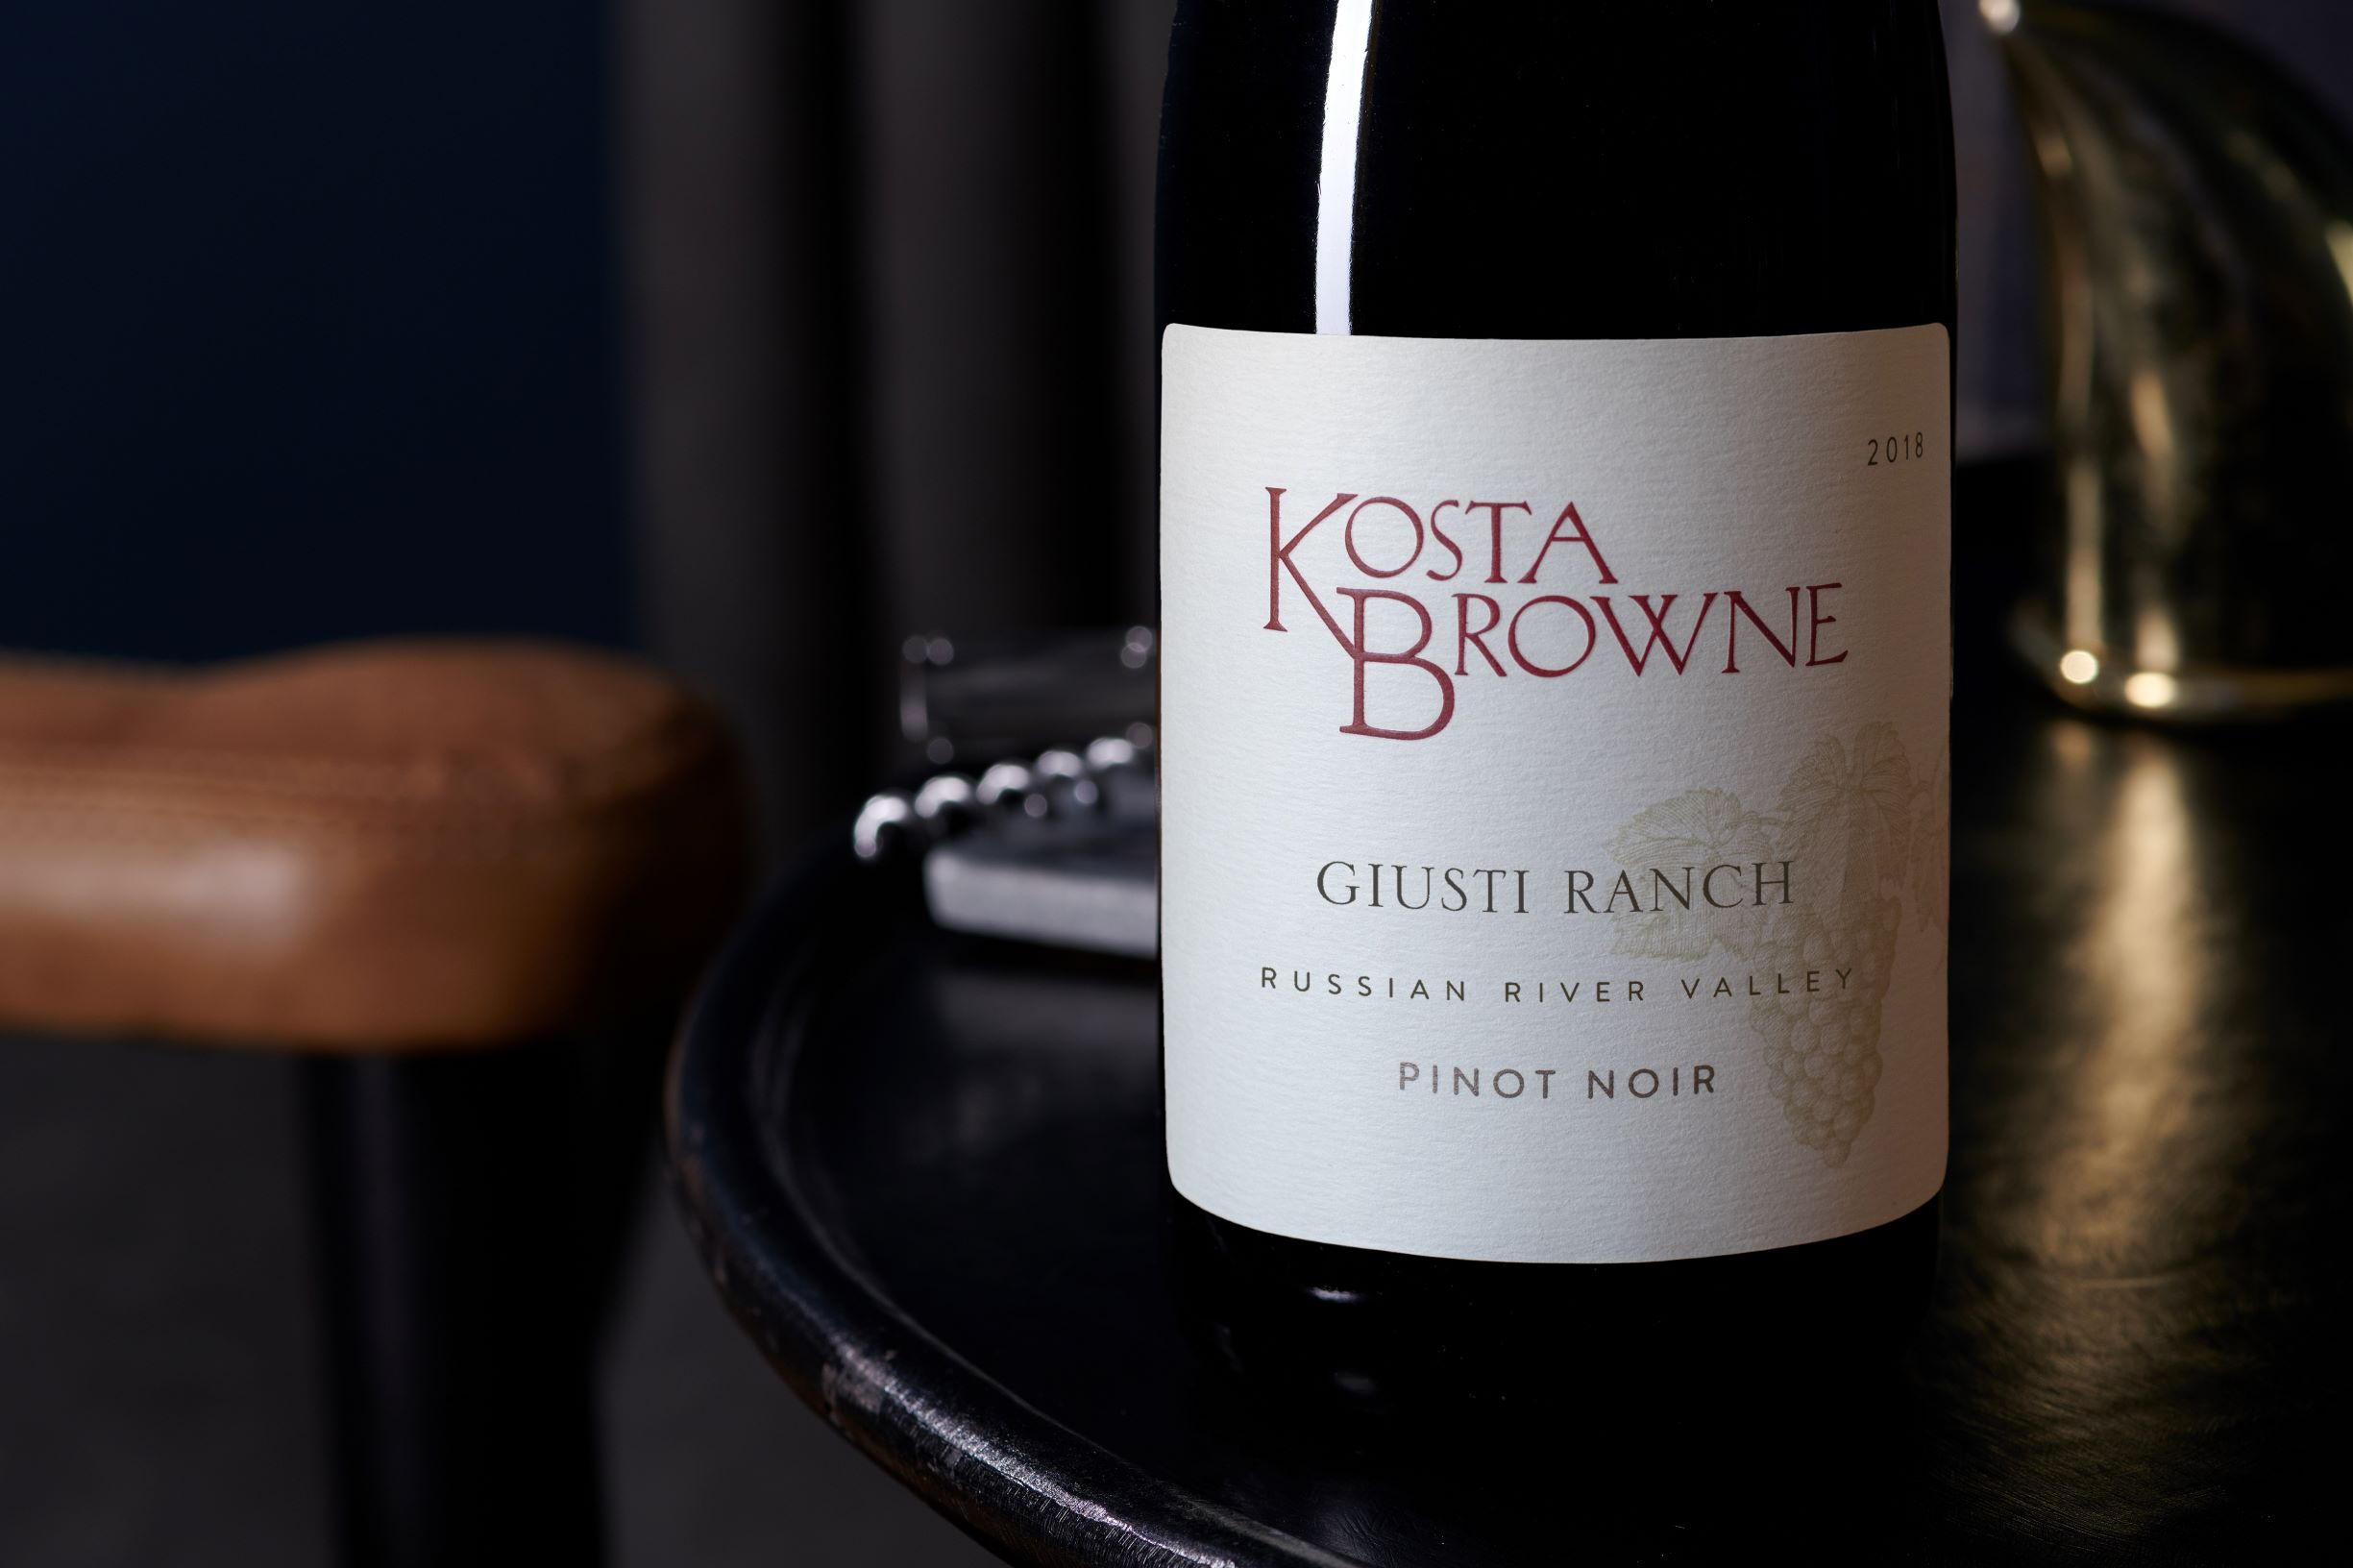 2018 Giusti Ranch Russian River Valley, Pinot Noir - Kosta Browne Winery